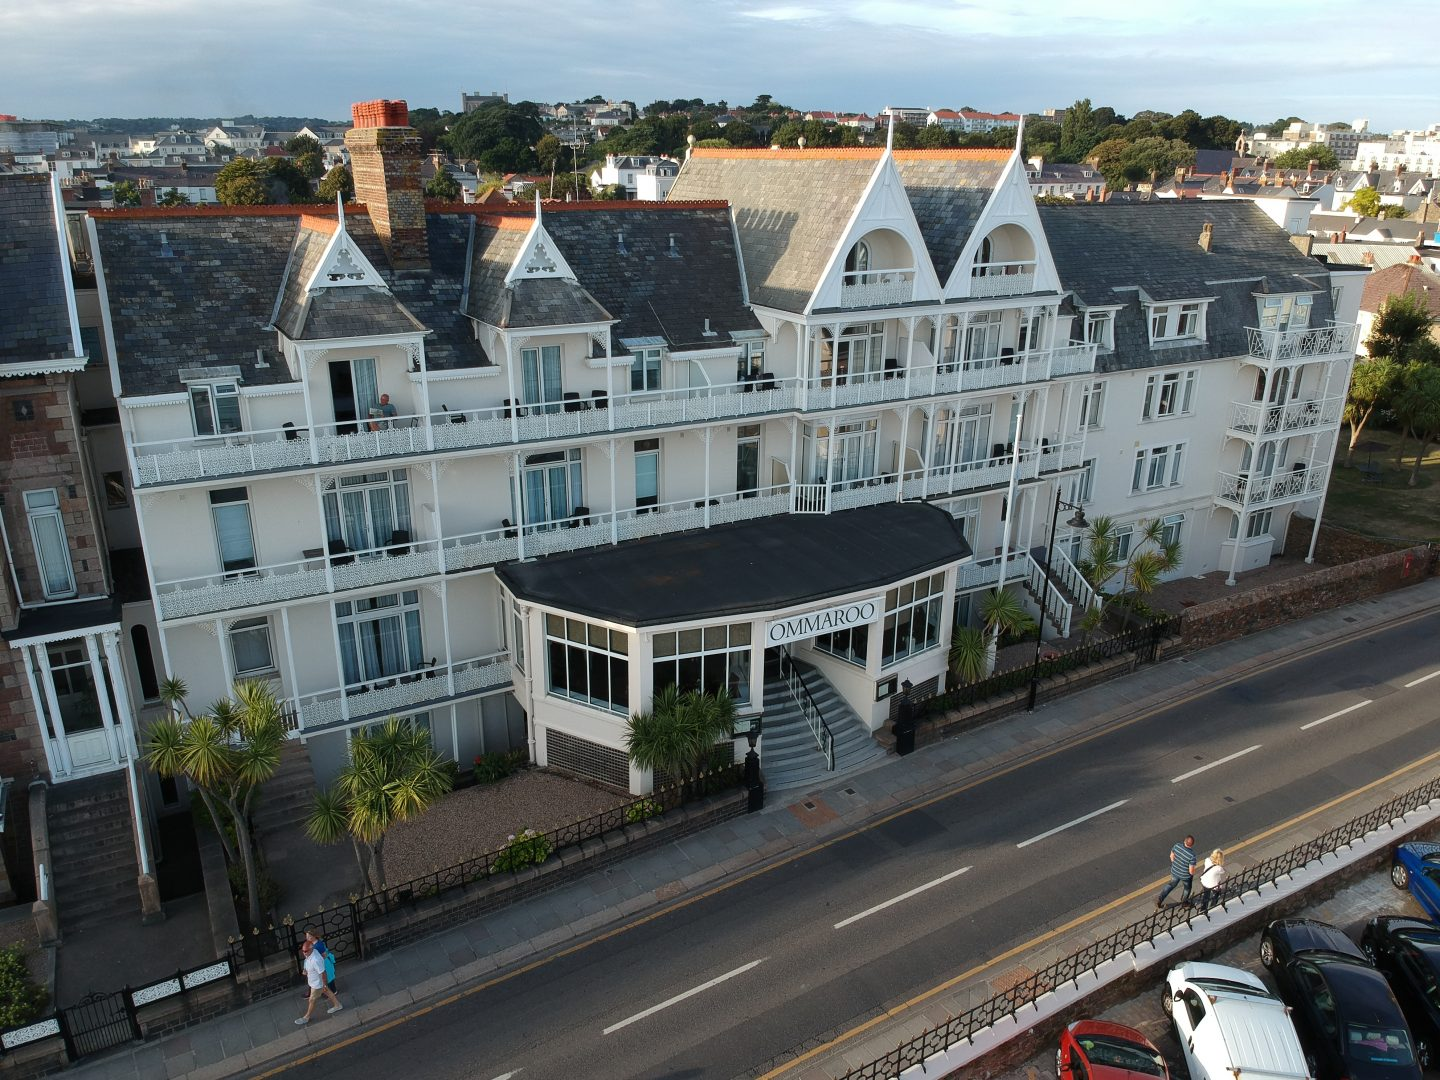 A Weekend Stay At The Ommaroo Hotel In Jersey {Review}